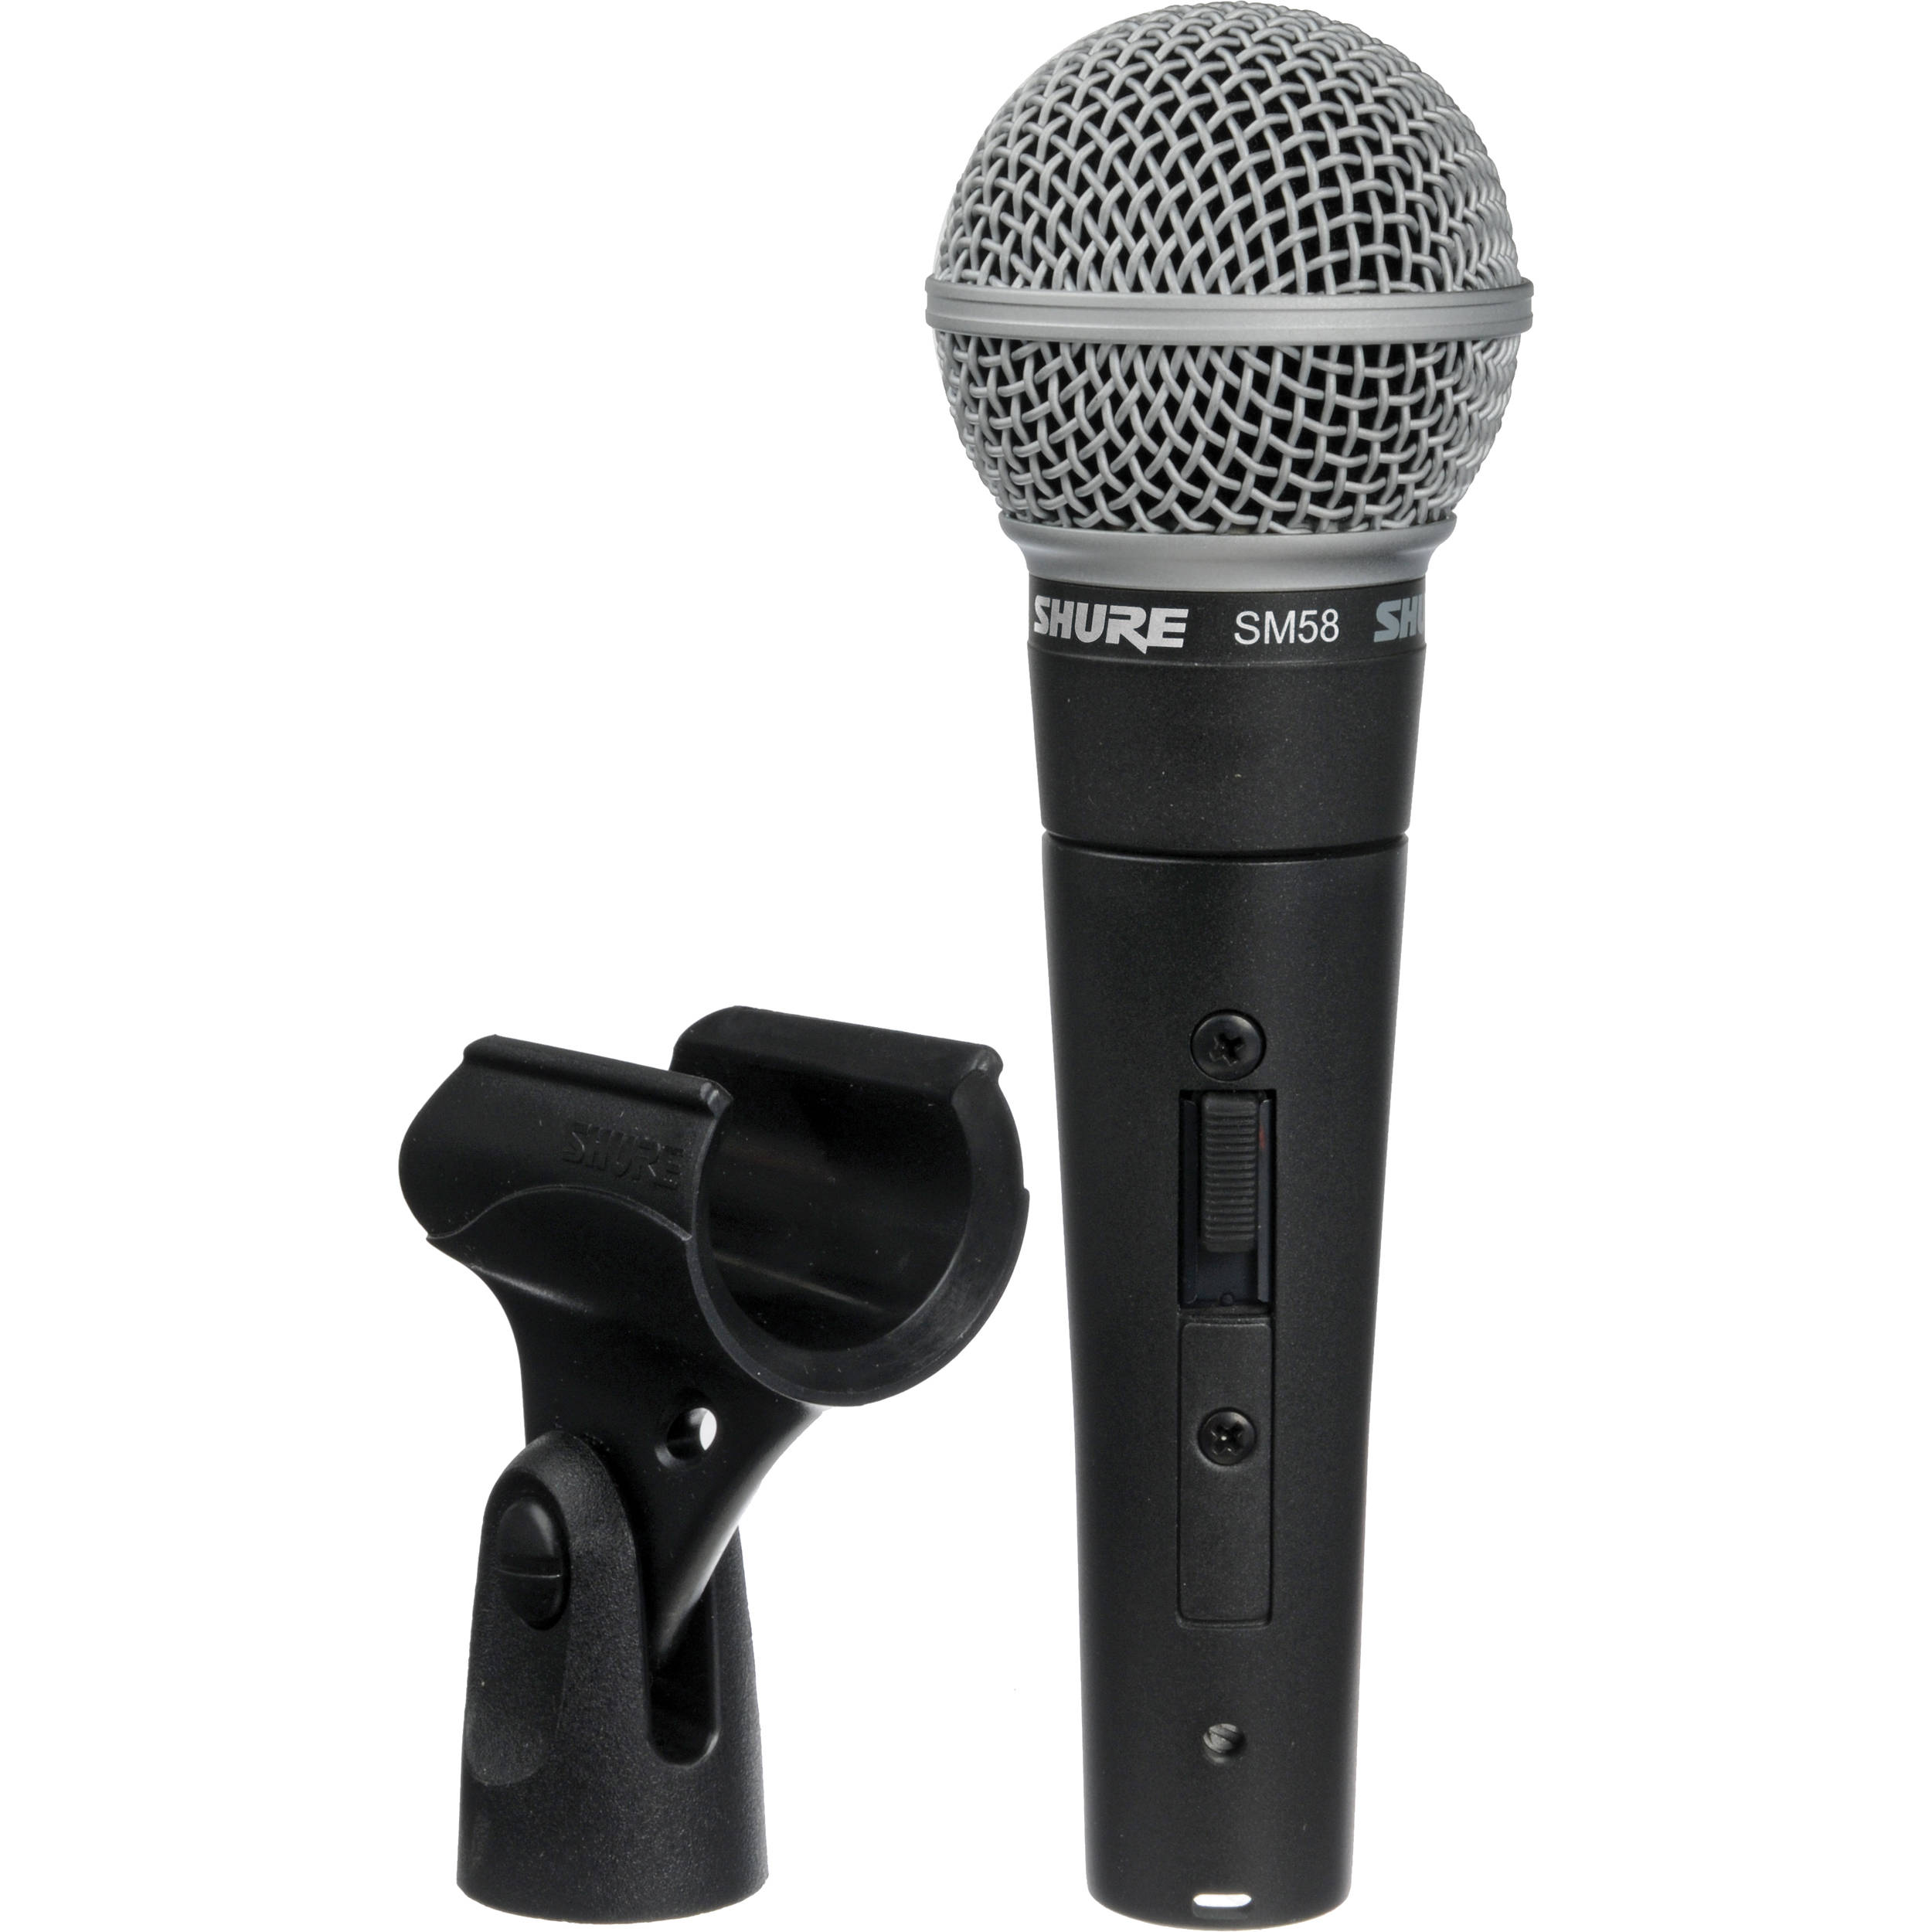 hure SM58S Vocal Microphone with On/Off Switch B&H Photo